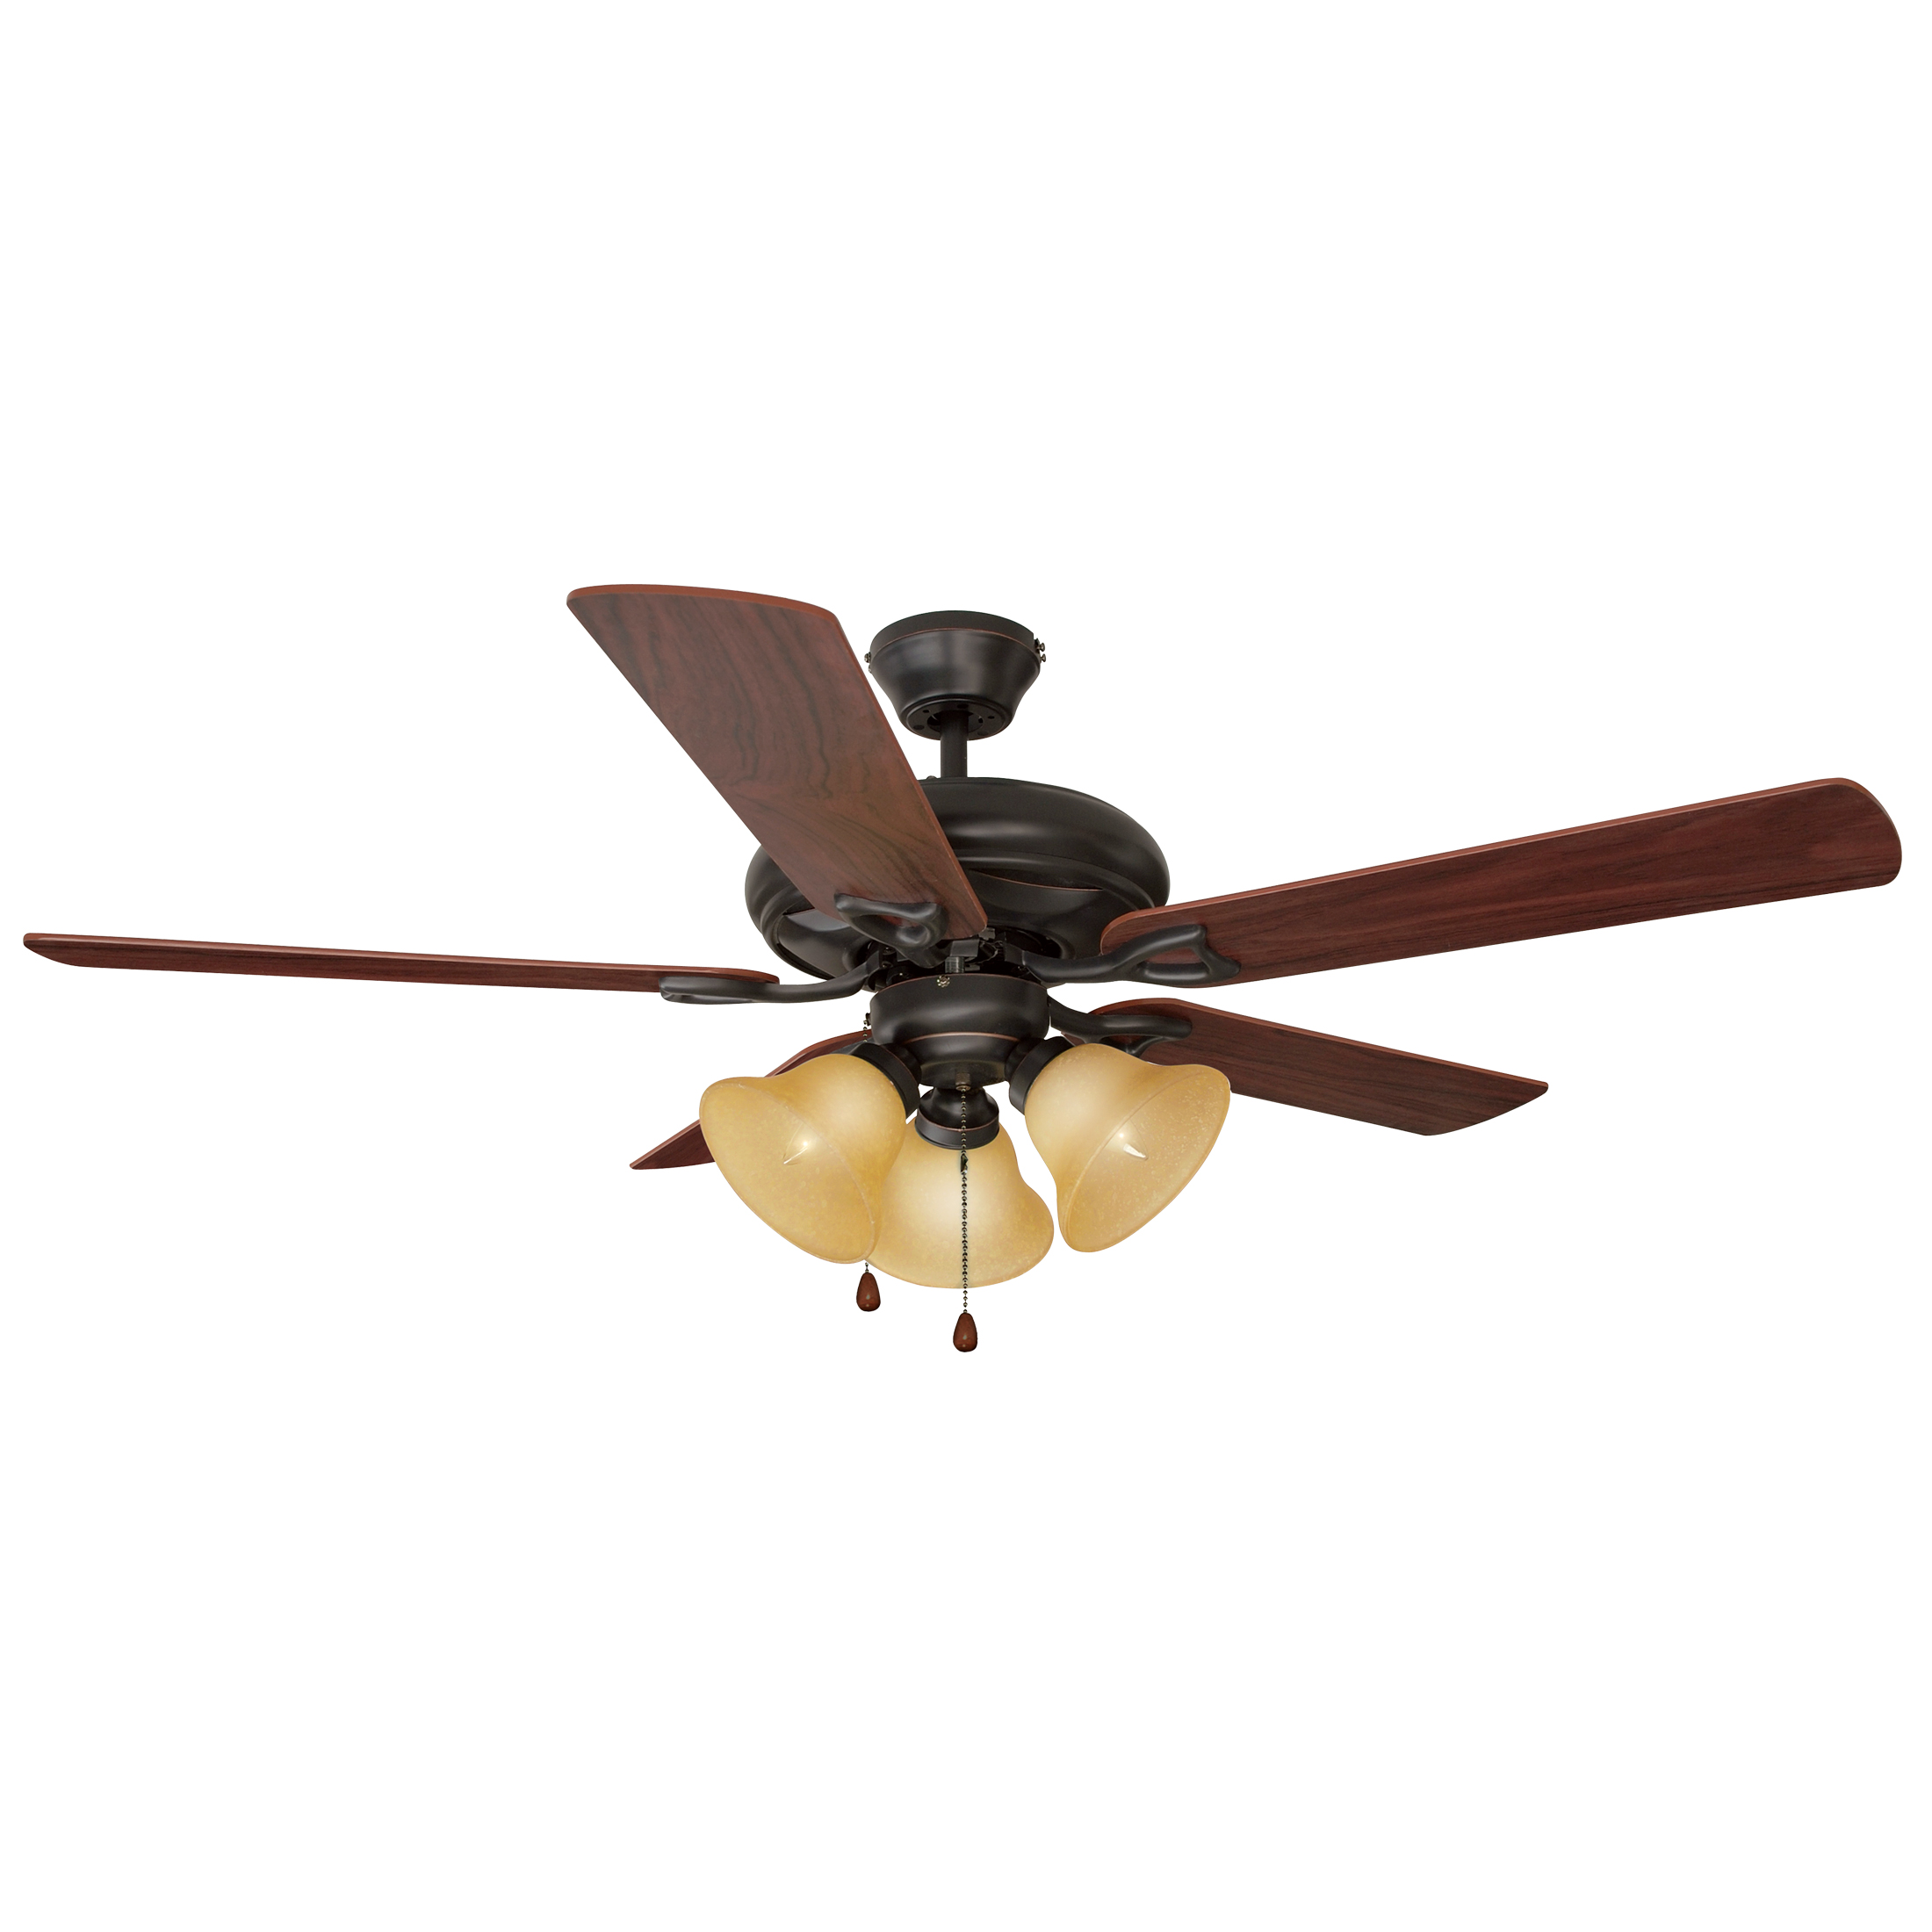 amazon fans in copper fan ceiling dp buy online brown at ceilings electric india orina low orient prices